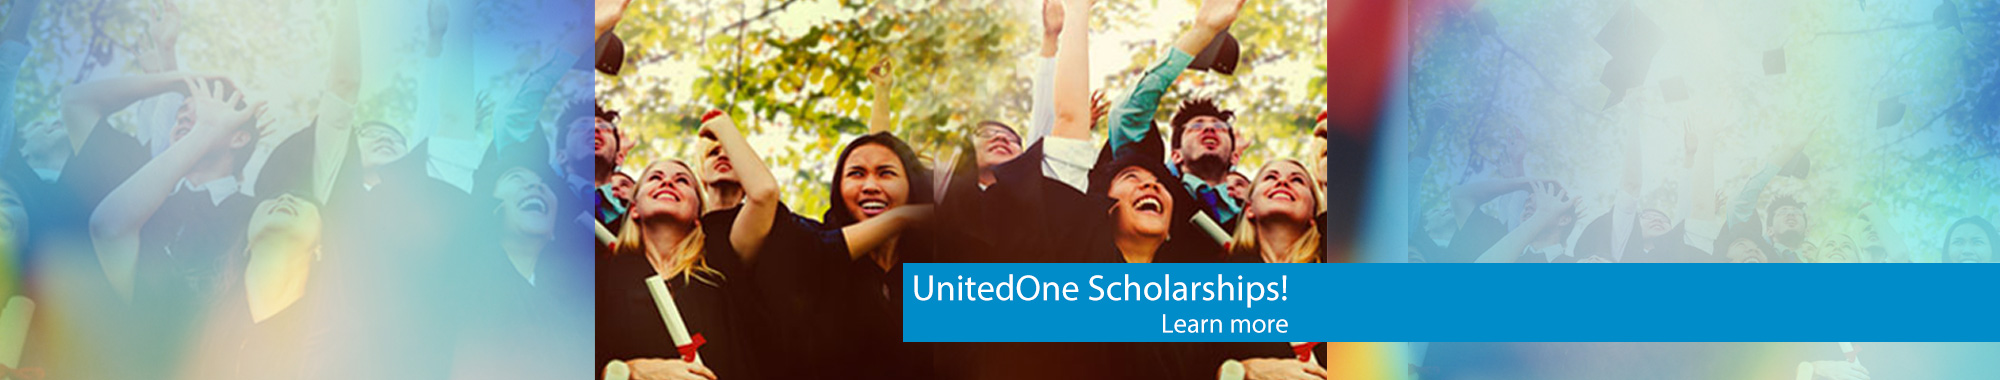 UnitedOne Scholarships